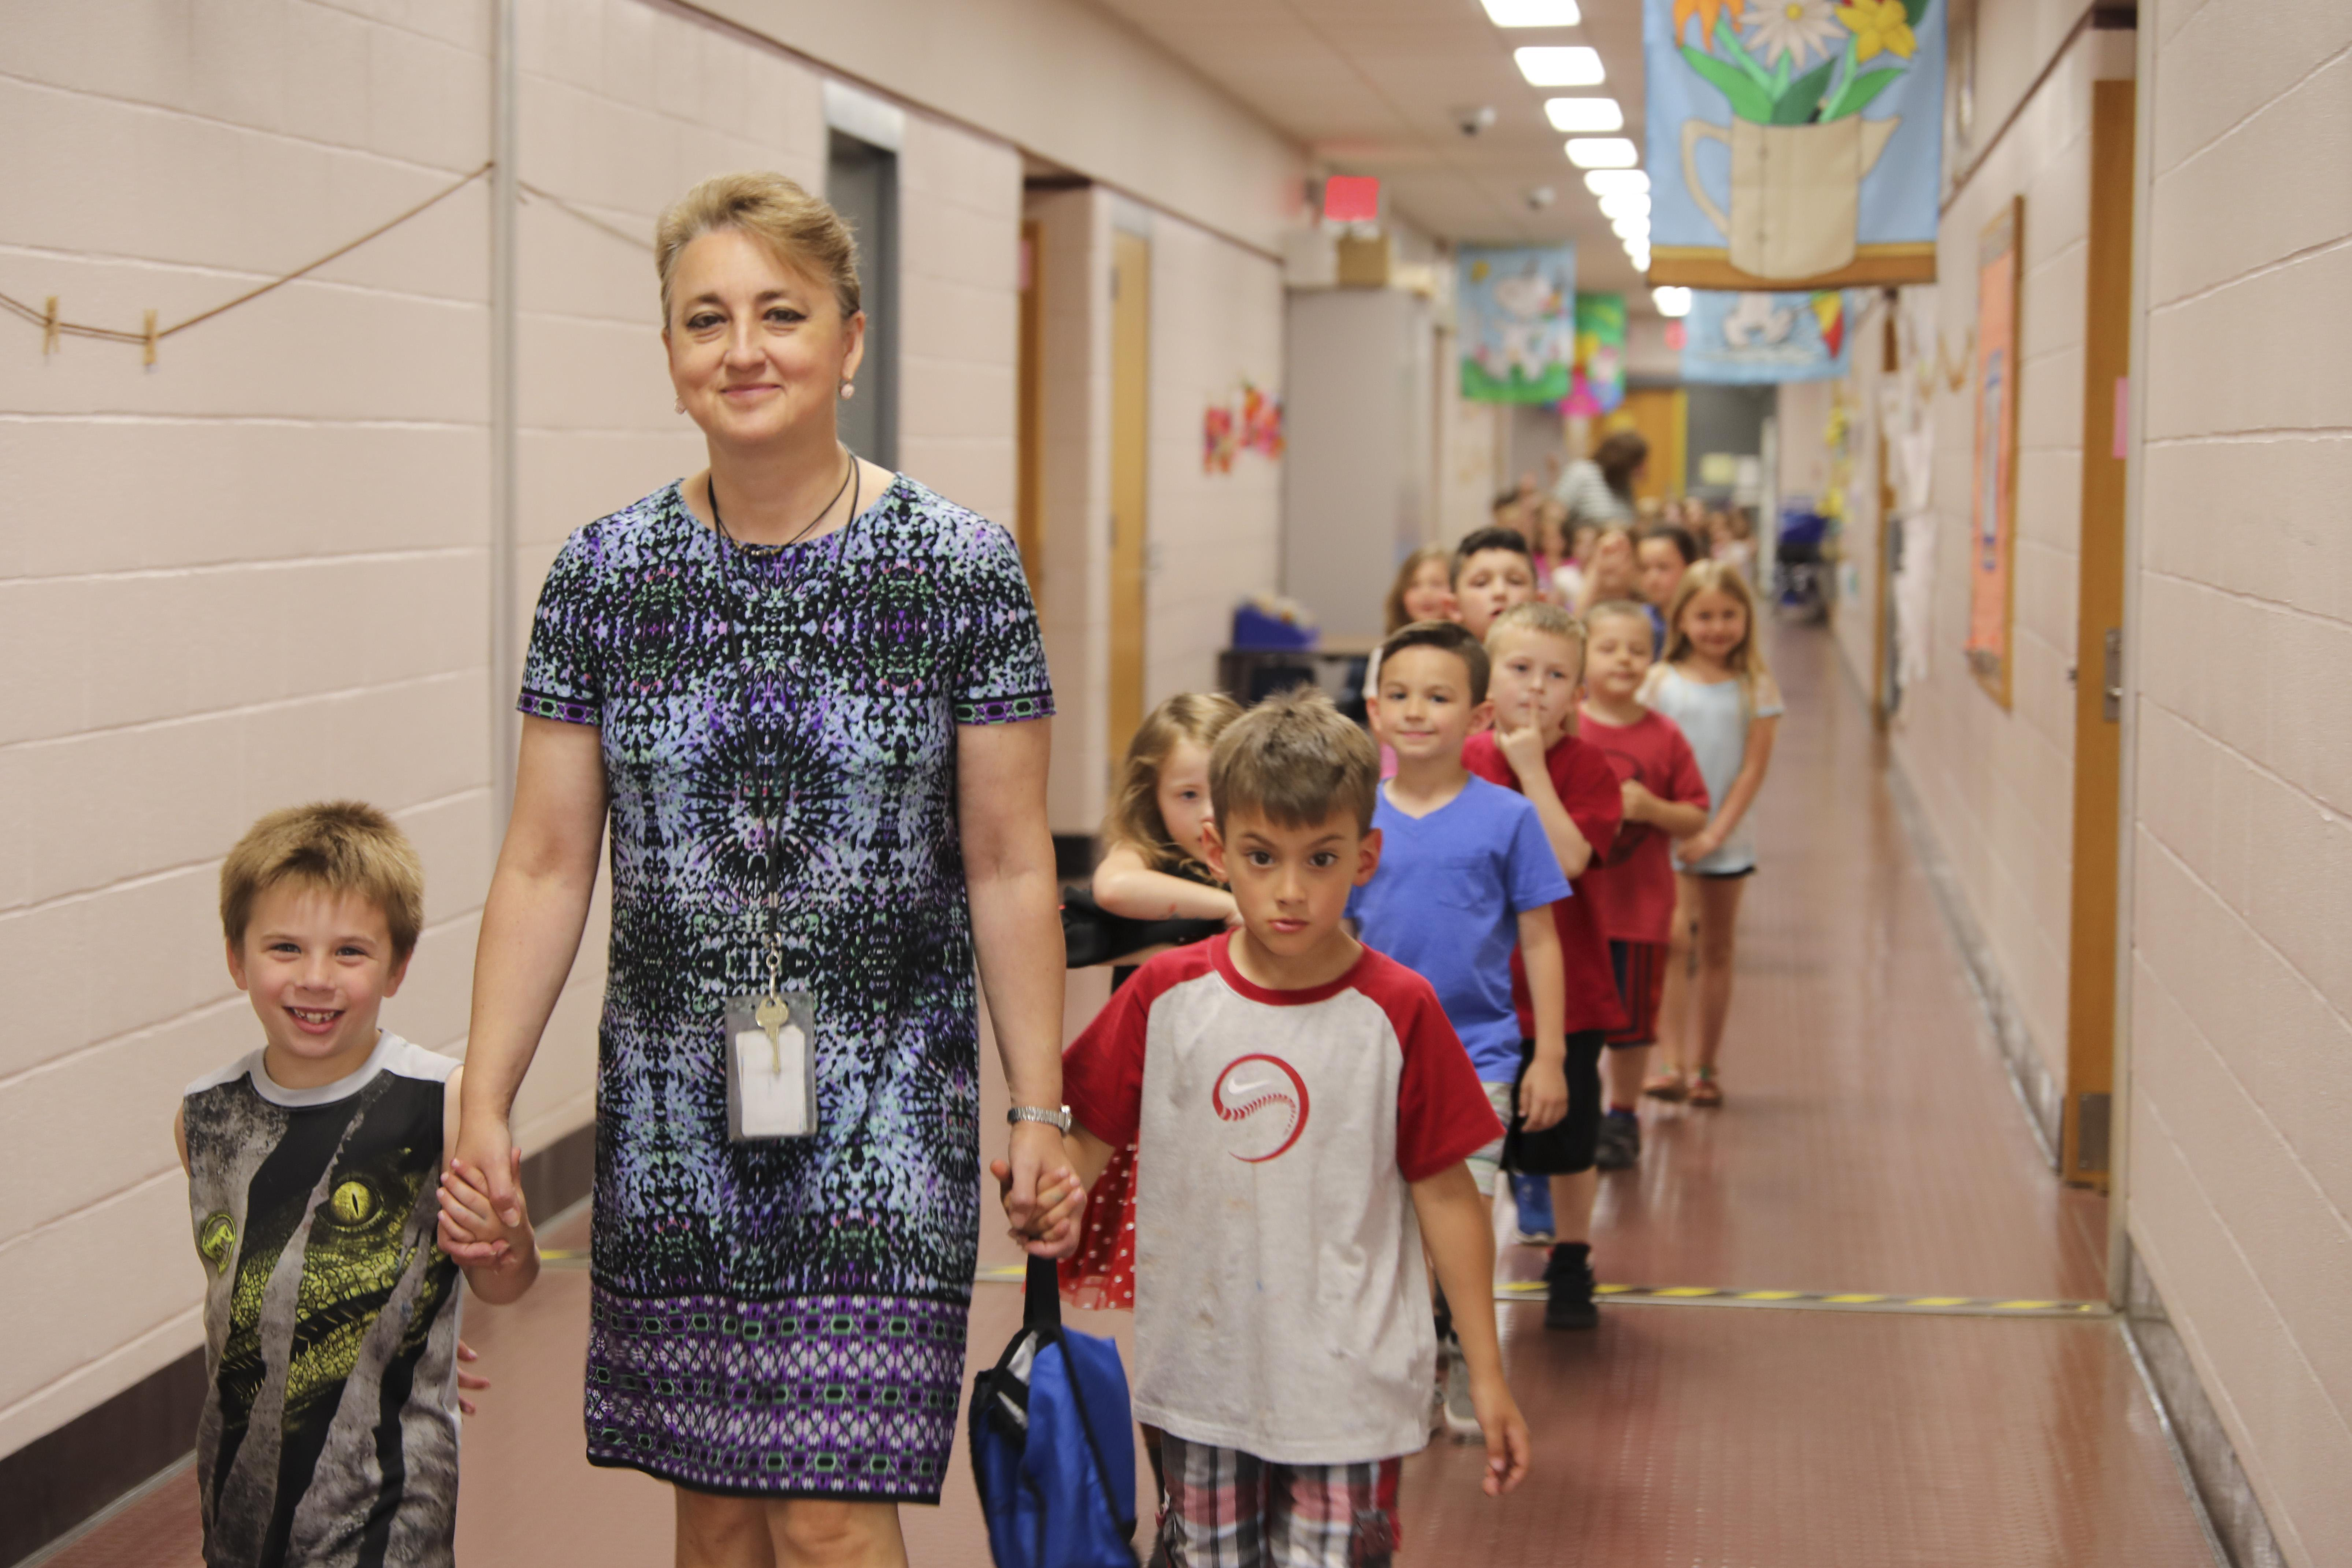 Teacher walking with class down the hall